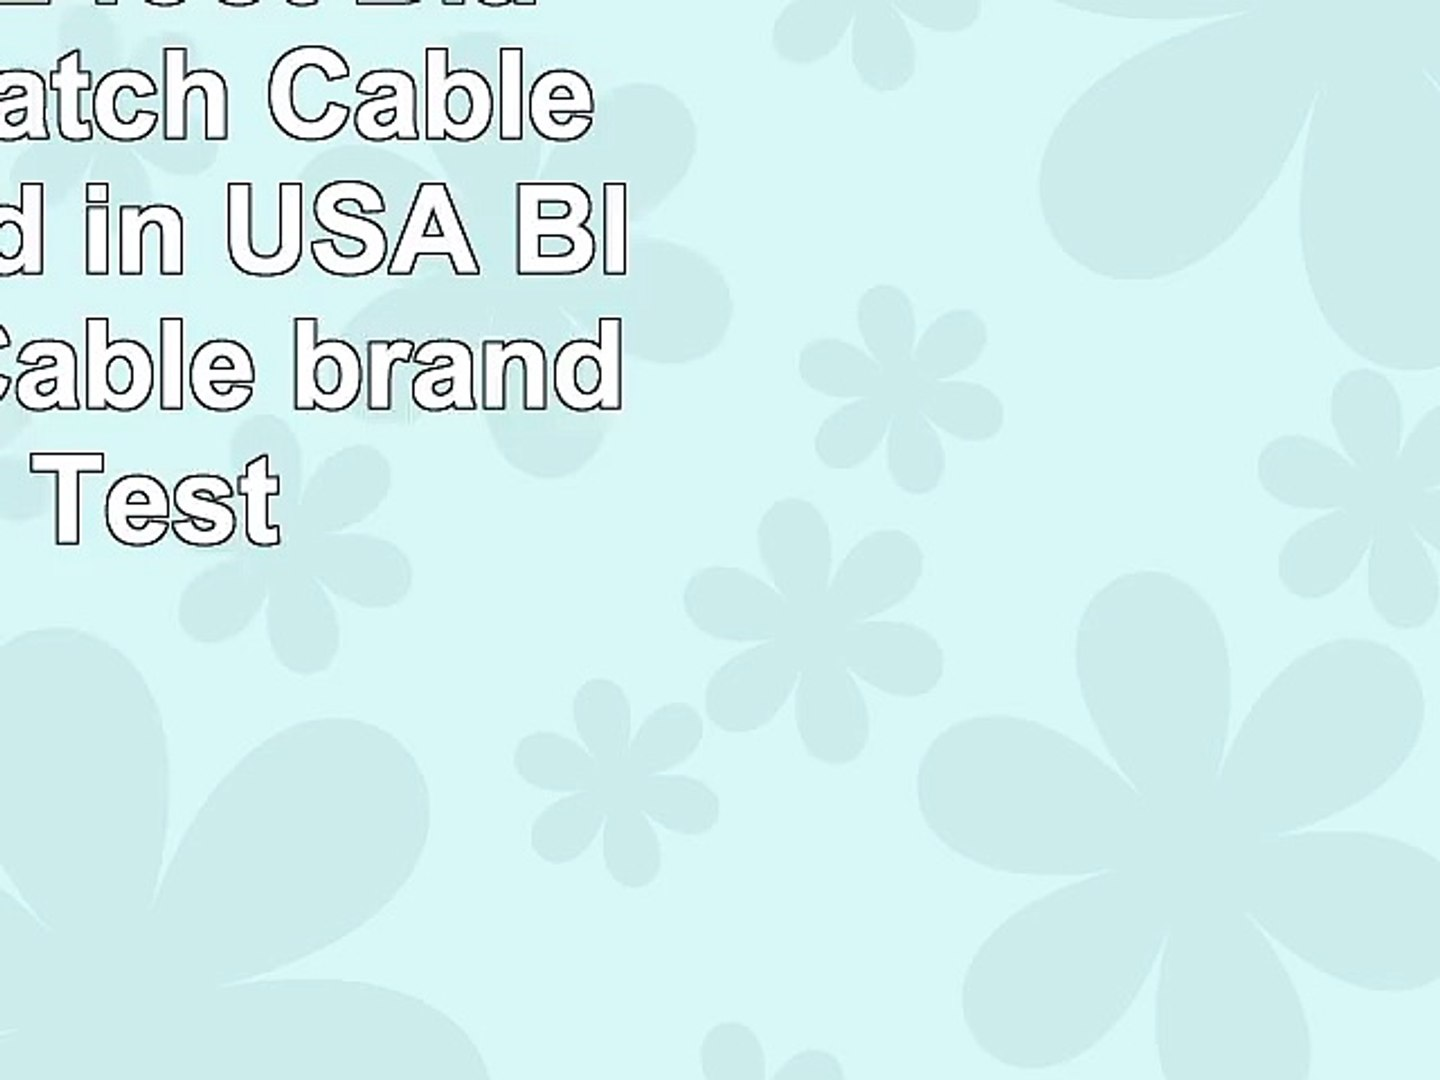 Certified 2 foot Black Cat 6 Patch Cable Assembled in USA Blue Jeans Cable brand with Test